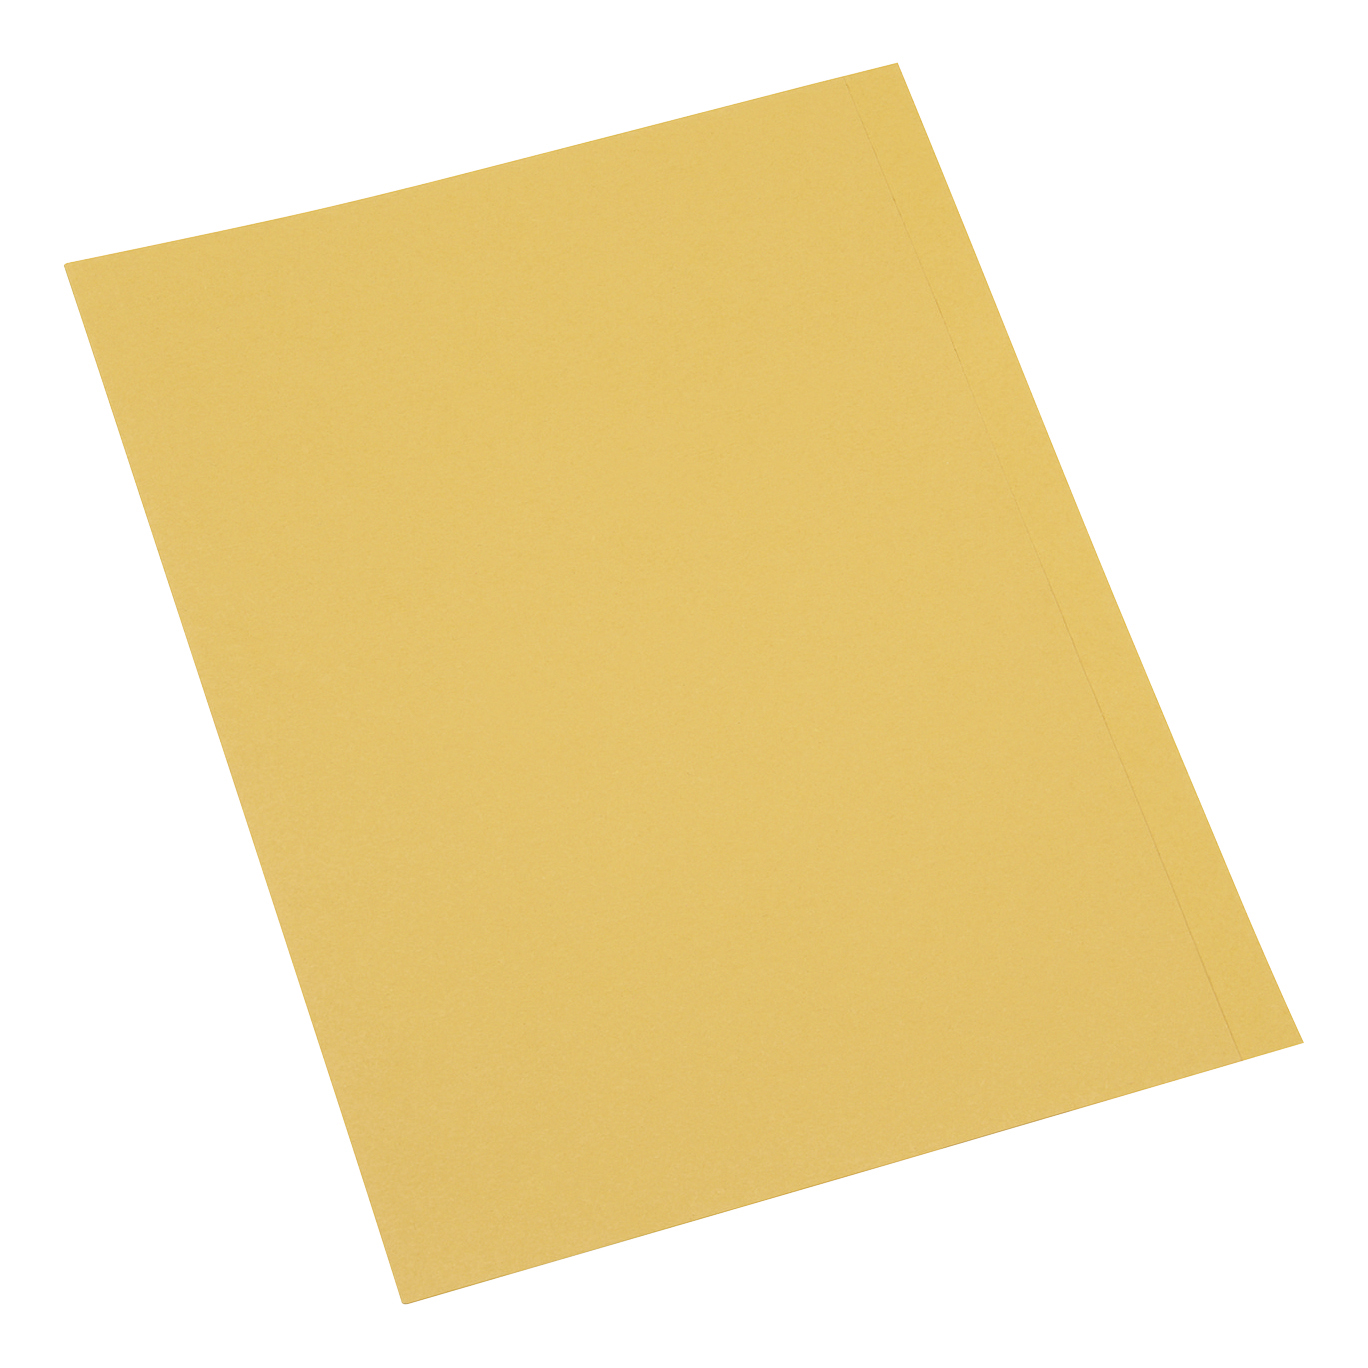 Square Cut Folders 5 Star Office Square Cut Folder Recycled 250gsm A4 Yellow Pack 100